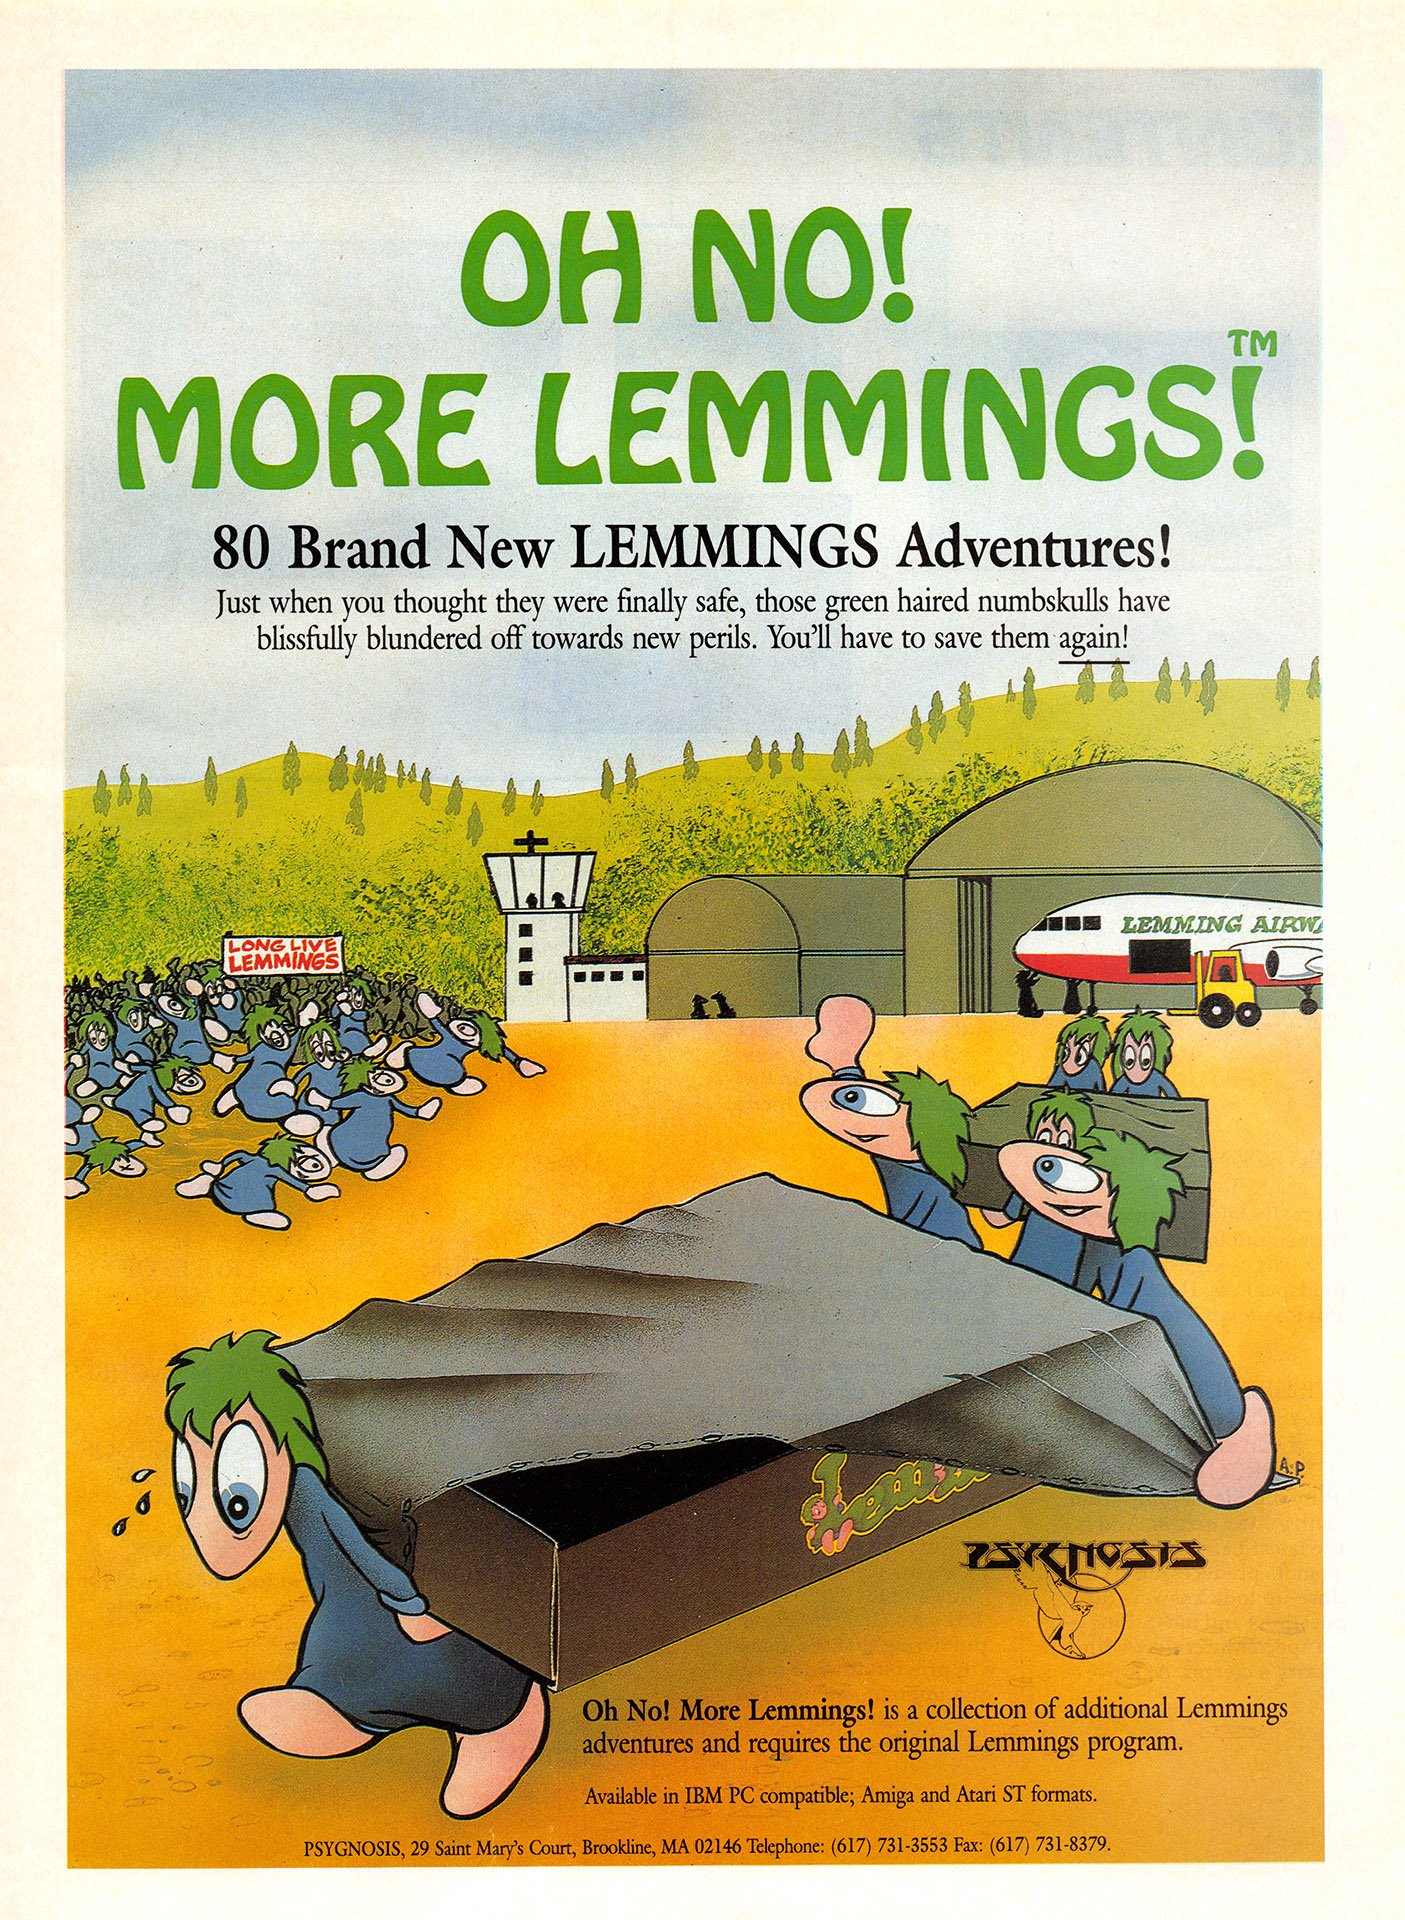 Oh No! More Lemmings!